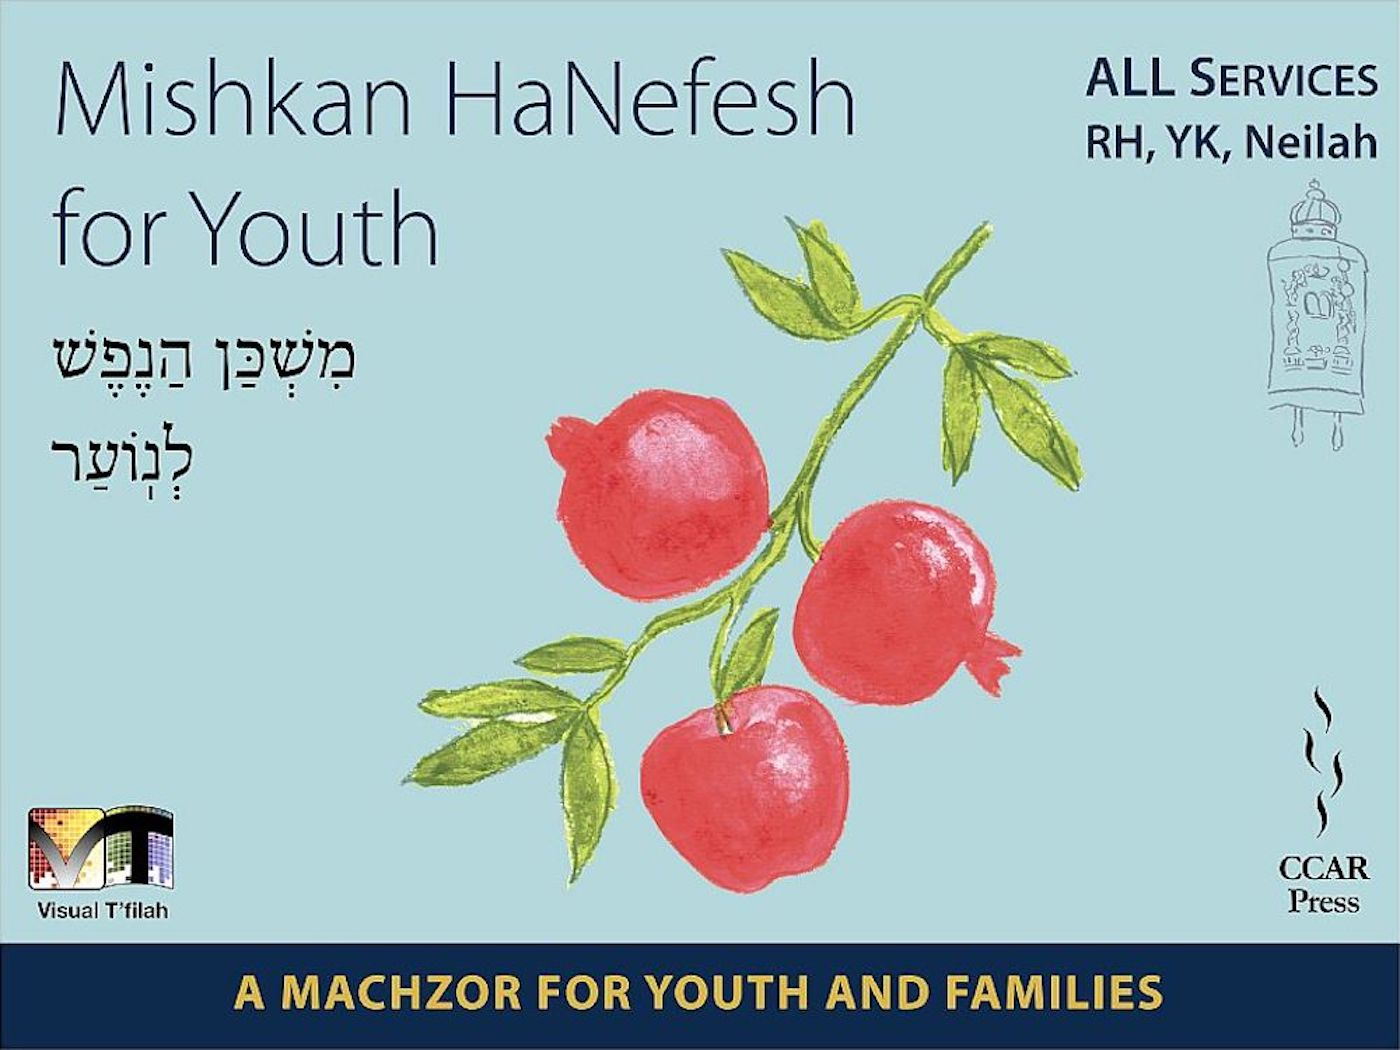 Mishkan HaNefesh for Youth Visual T'filah - All (includes